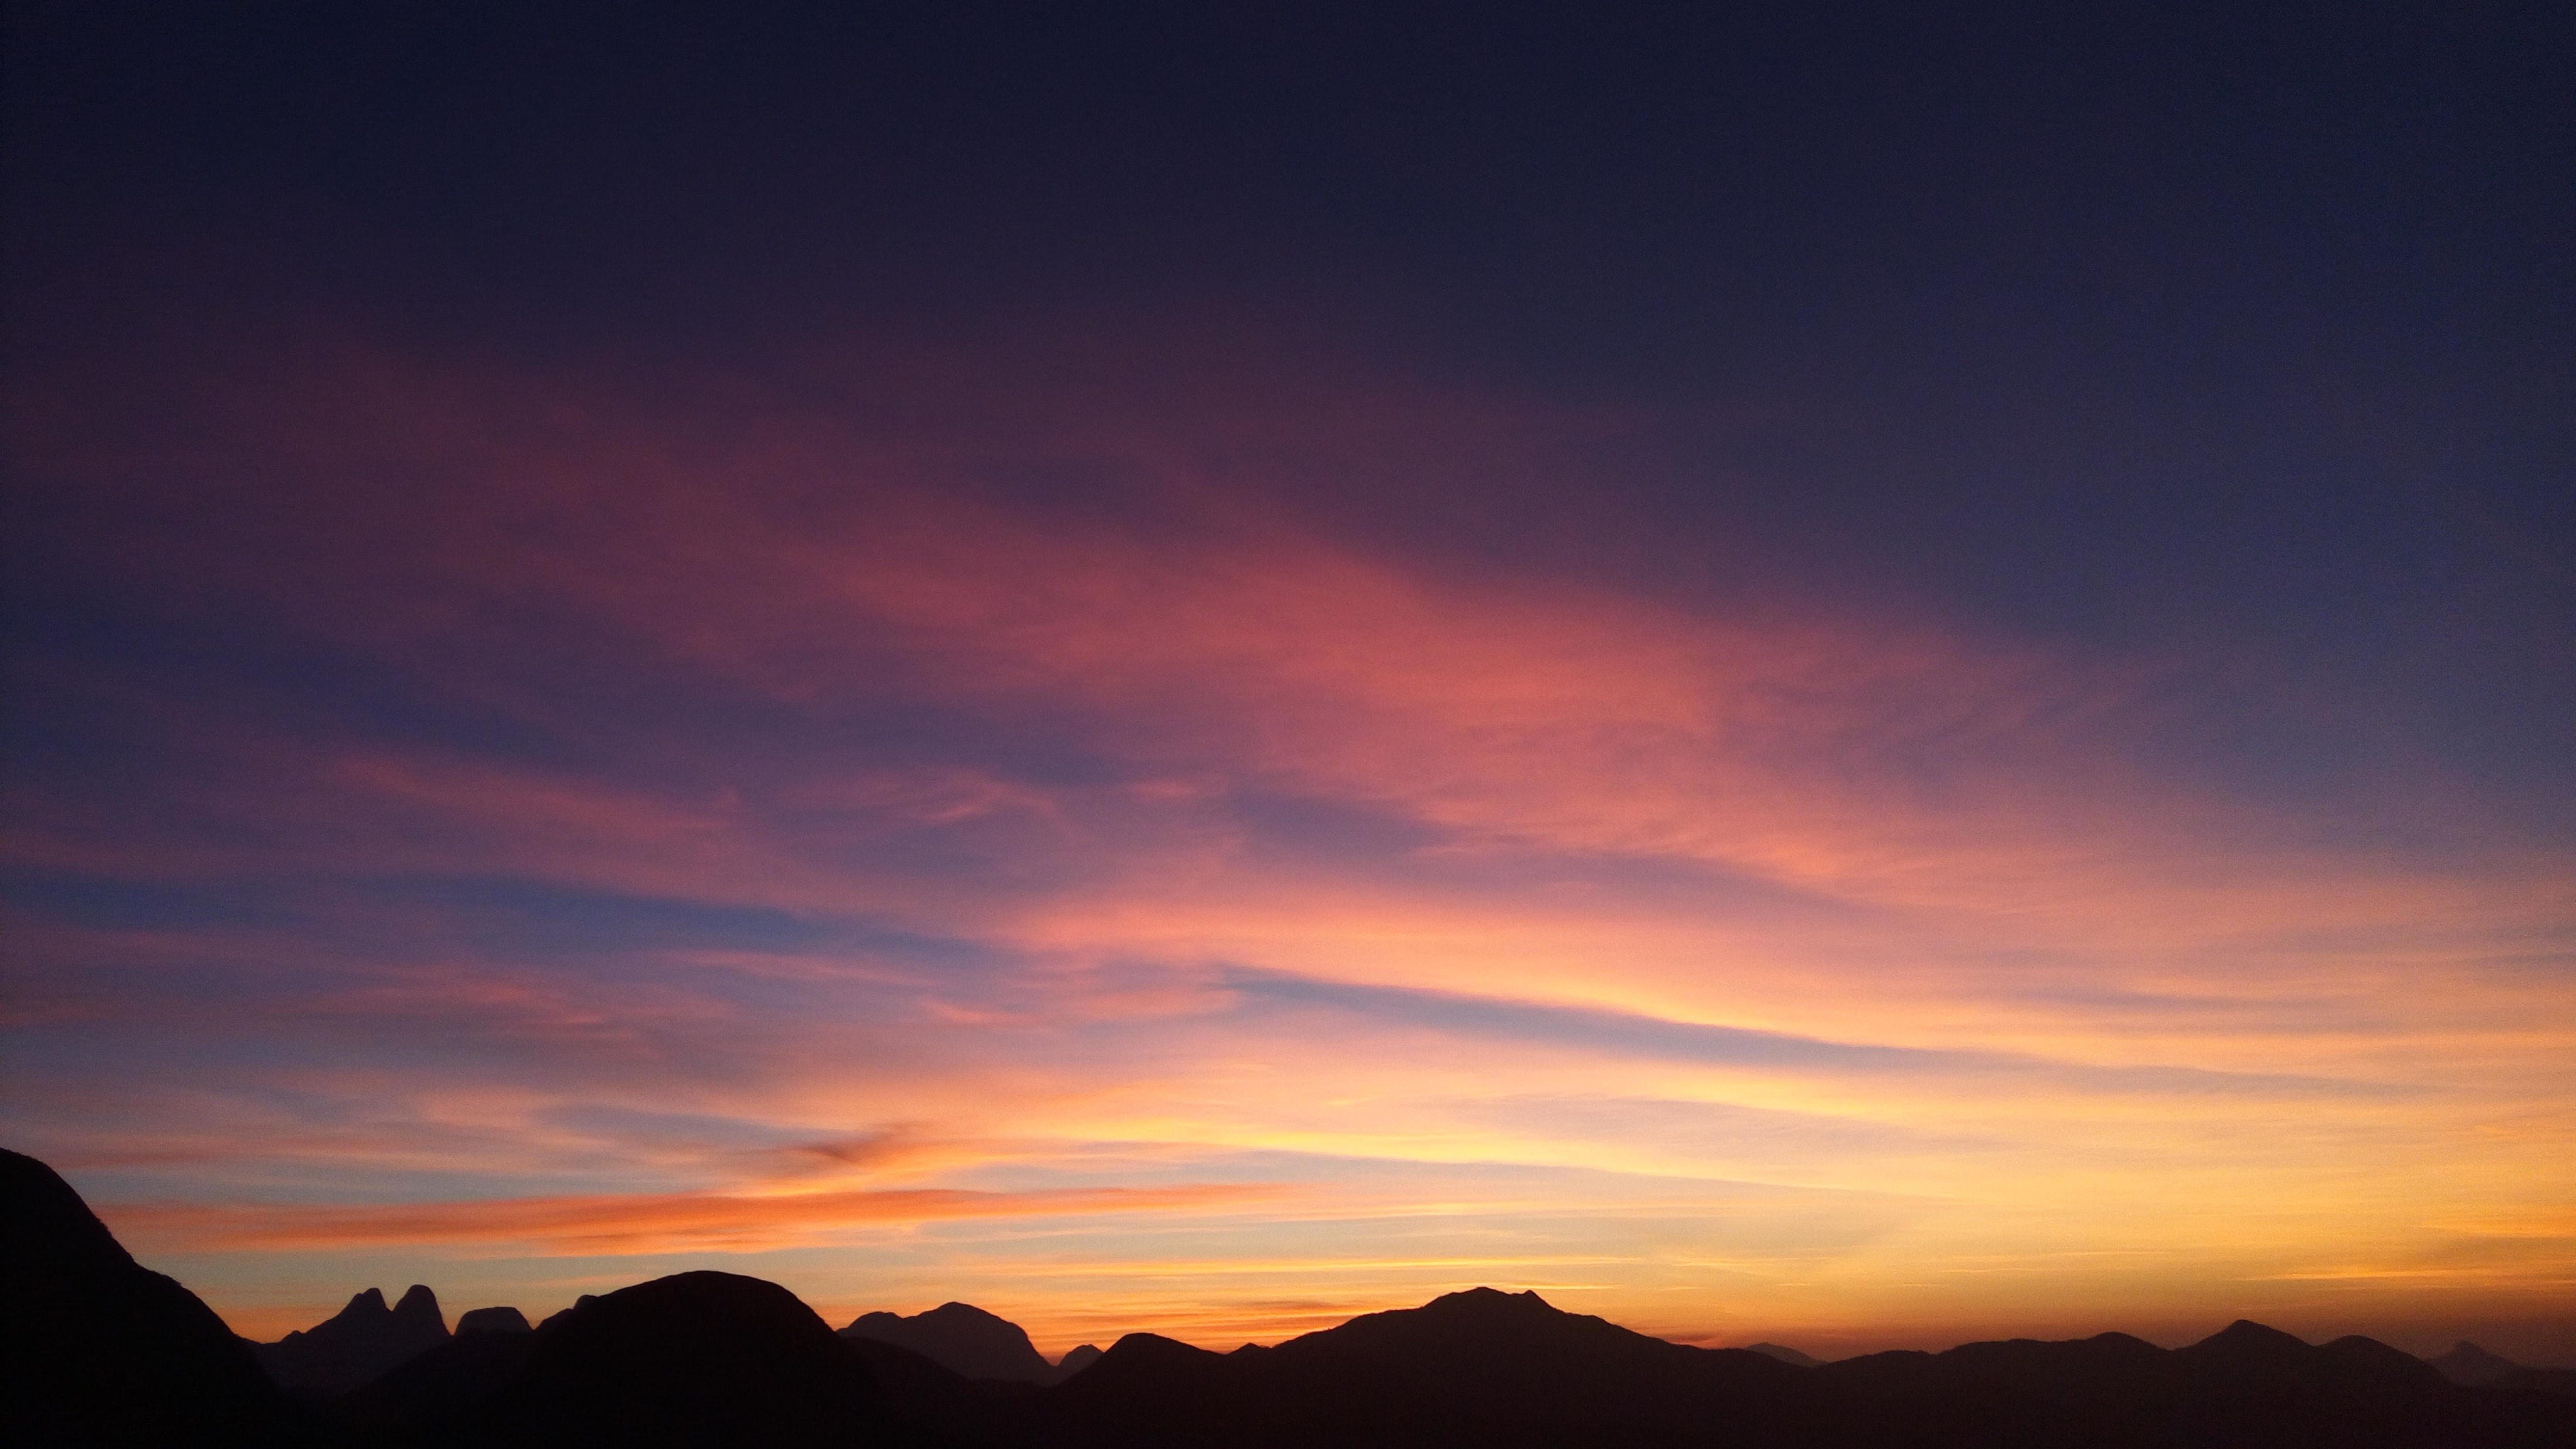 Silhouette of mountains in Rio de Janeiro in front of a sunset